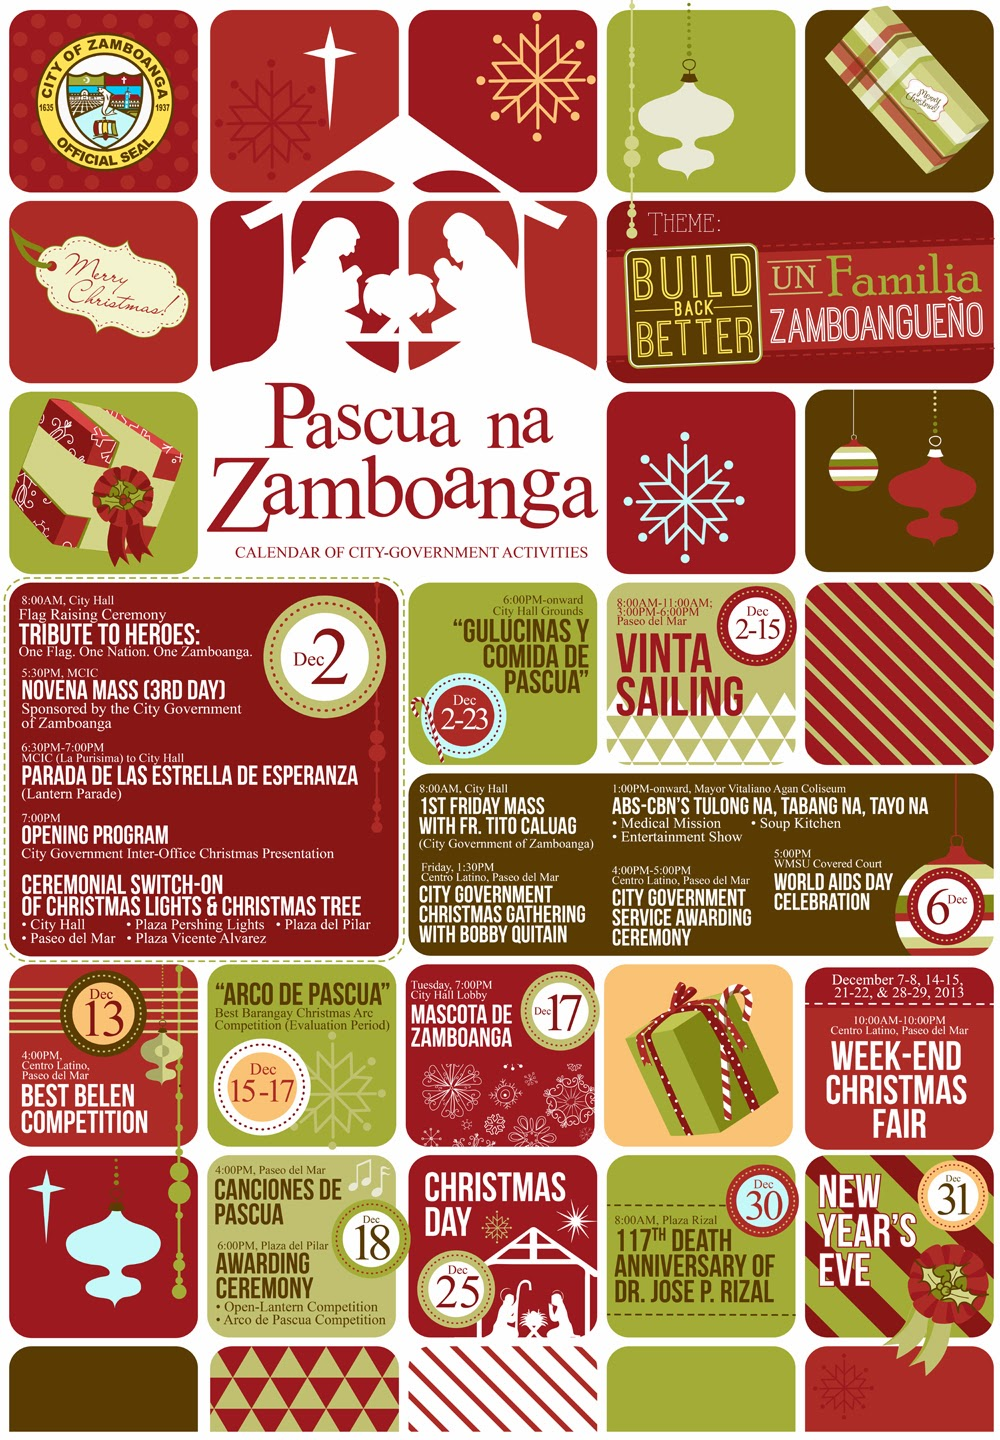 pascua na zamboanga calendar of activities poster christmas celebration city hall